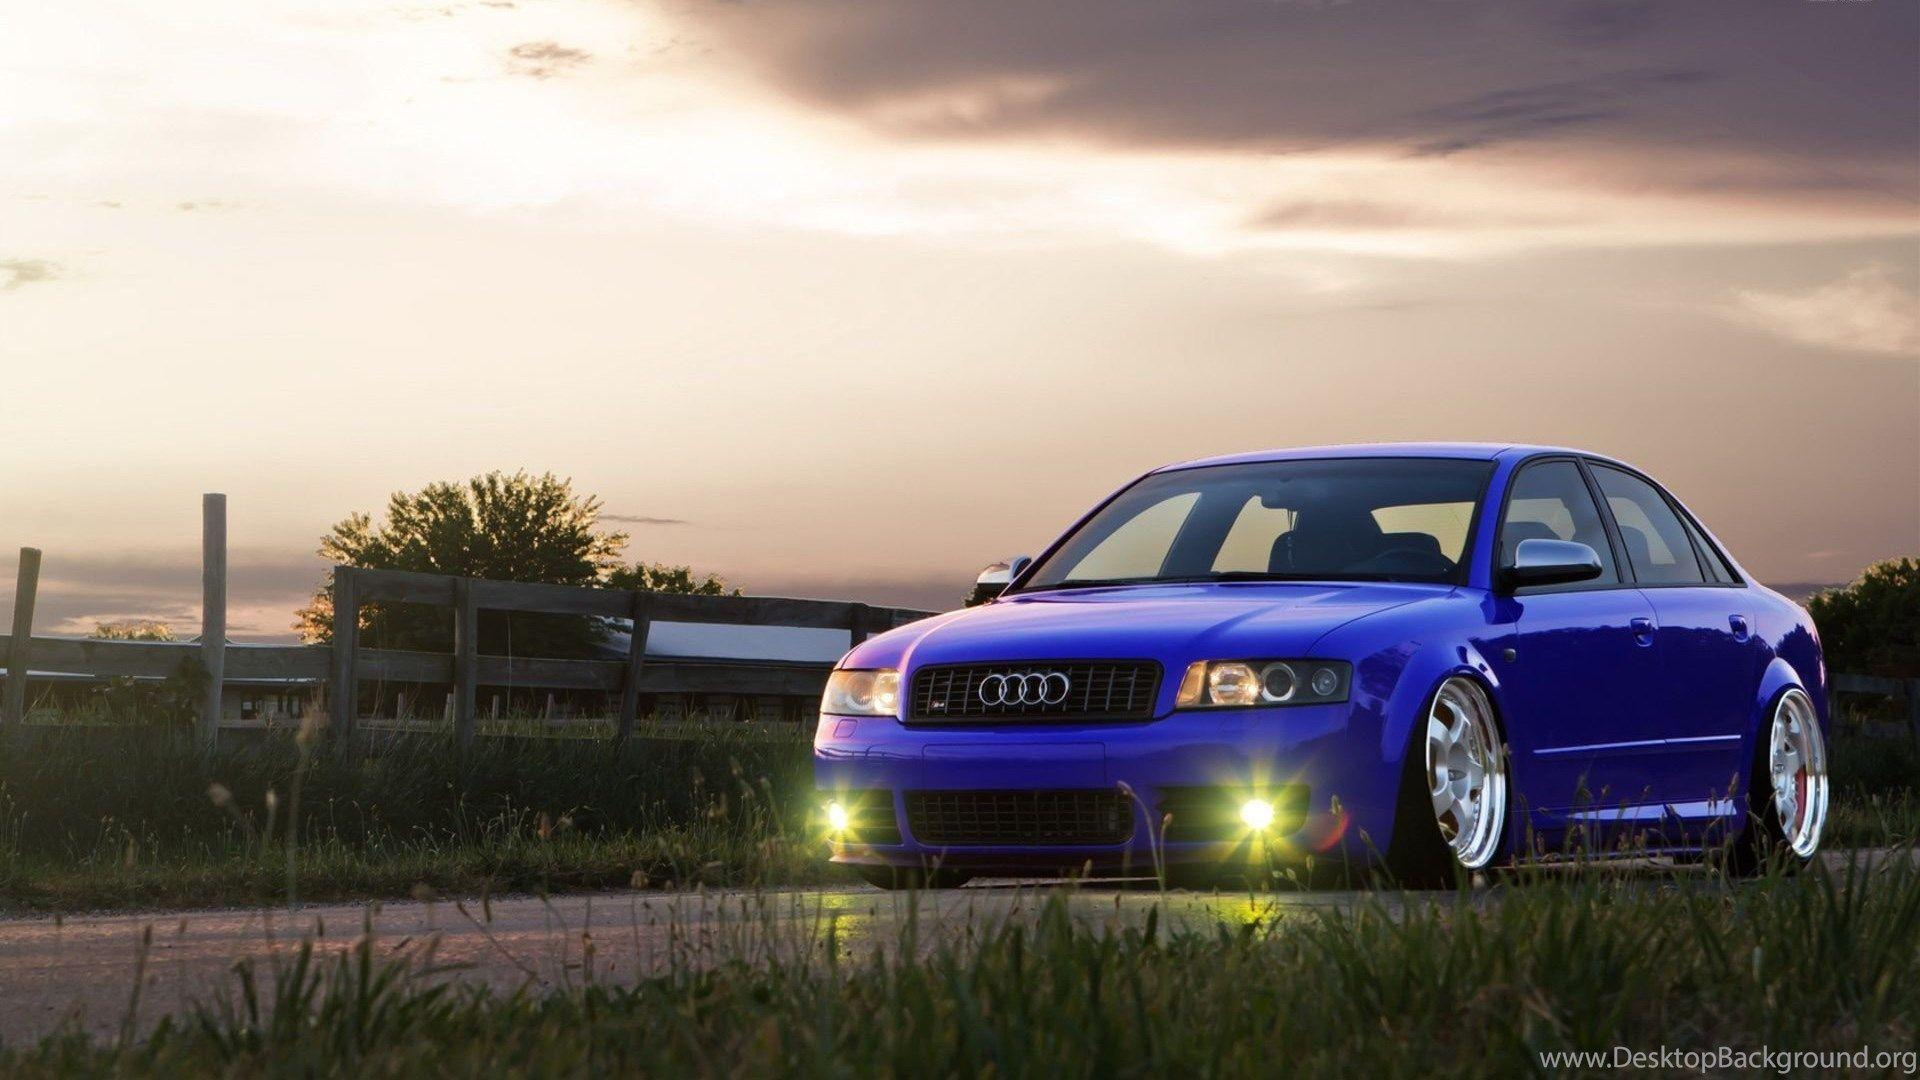 Audi S4 Wallpapers 1920x1080 Image Desktop Backgrounds